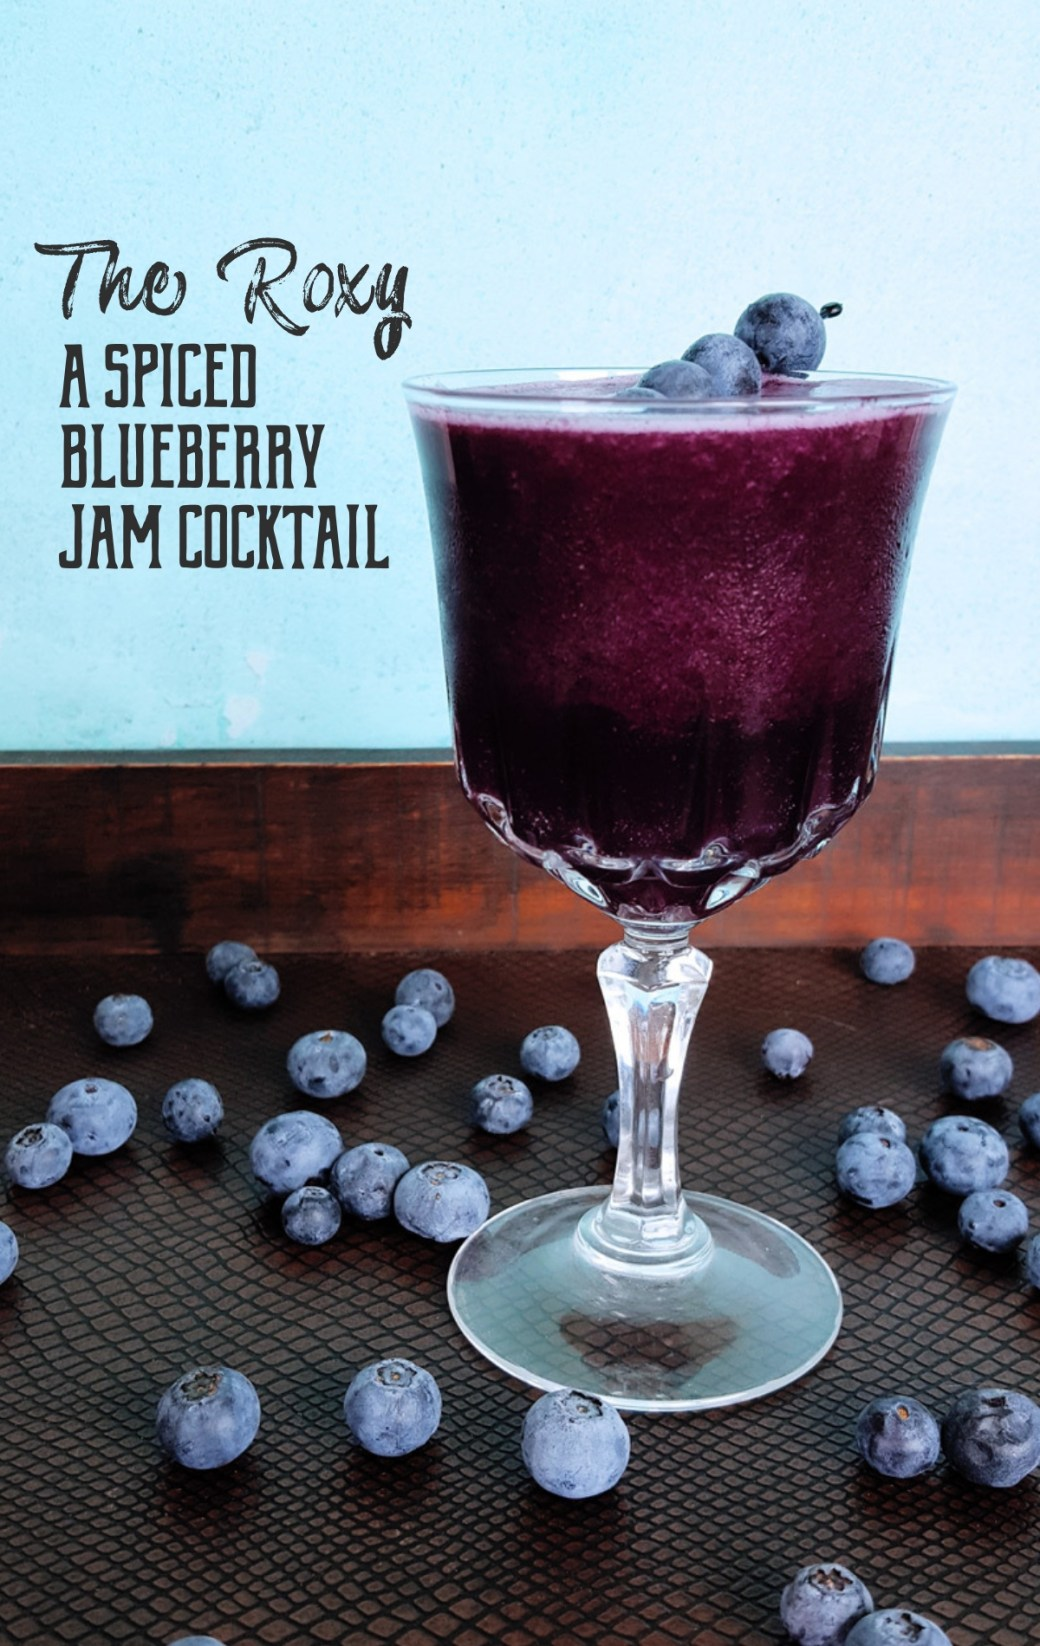 With warm spices, sweet berries, and tropical juices, this Spiced Blueberry Jam Cocktail a vibrant purple delight to the senses. #berries #cocktail #rum | FeastInThyme.com